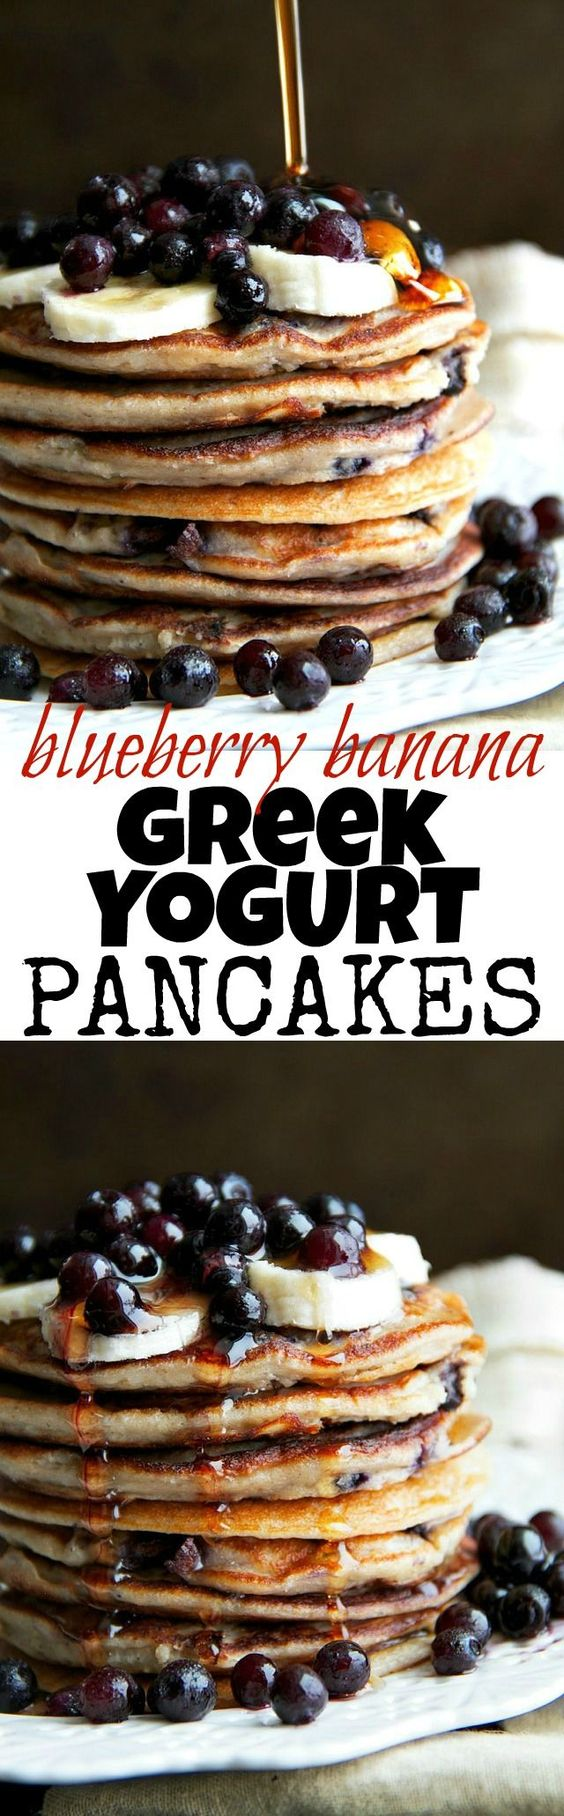 These light and fluffy Blueberry Banana Greek Yogurt Pancakes are sure to keep you satisfied all morning with over 20g of whole food protein!   runningwithspoons.com #glutenfree #healthy #breakfast